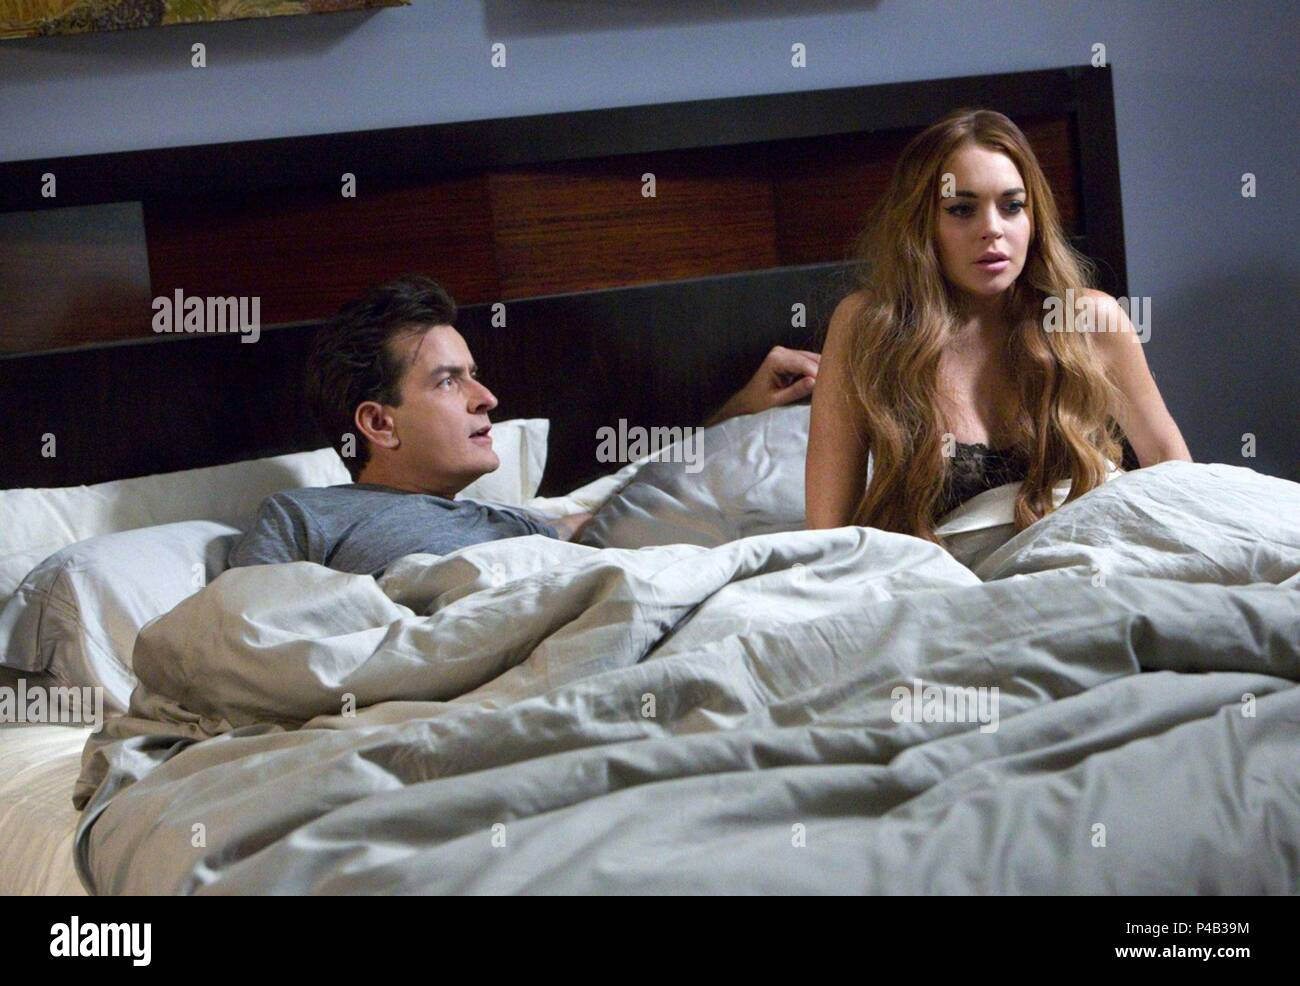 Original Film Title Scary Movie 5 English Title Scary Movie 5 Film Director Malcolm D Lee Year 2013 Stars Lindsay Lohan Charlie Sheen Credit Dimension Films Album Stock Photo Alamy